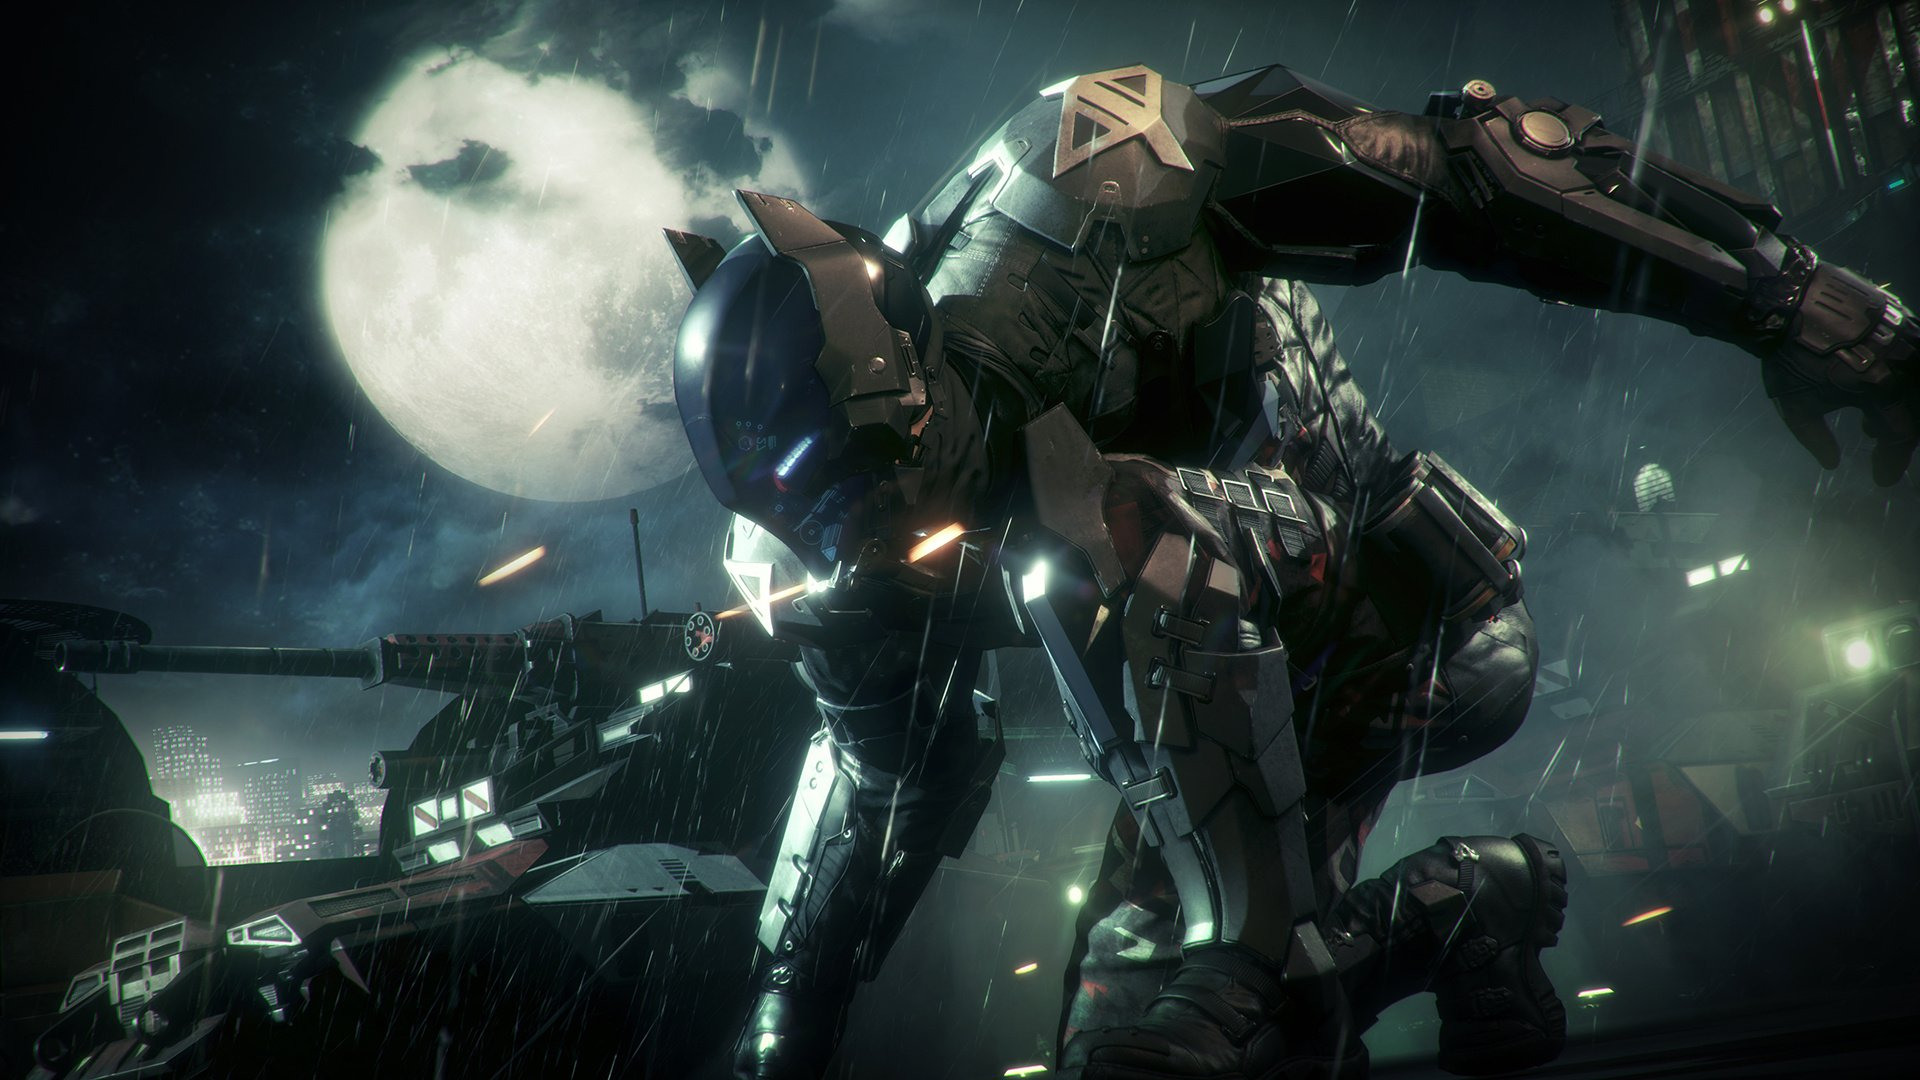 original how to solve every riddle in batman arkham knight on ps4 guide,I Bet You Weren T Invited To This Lavish Do